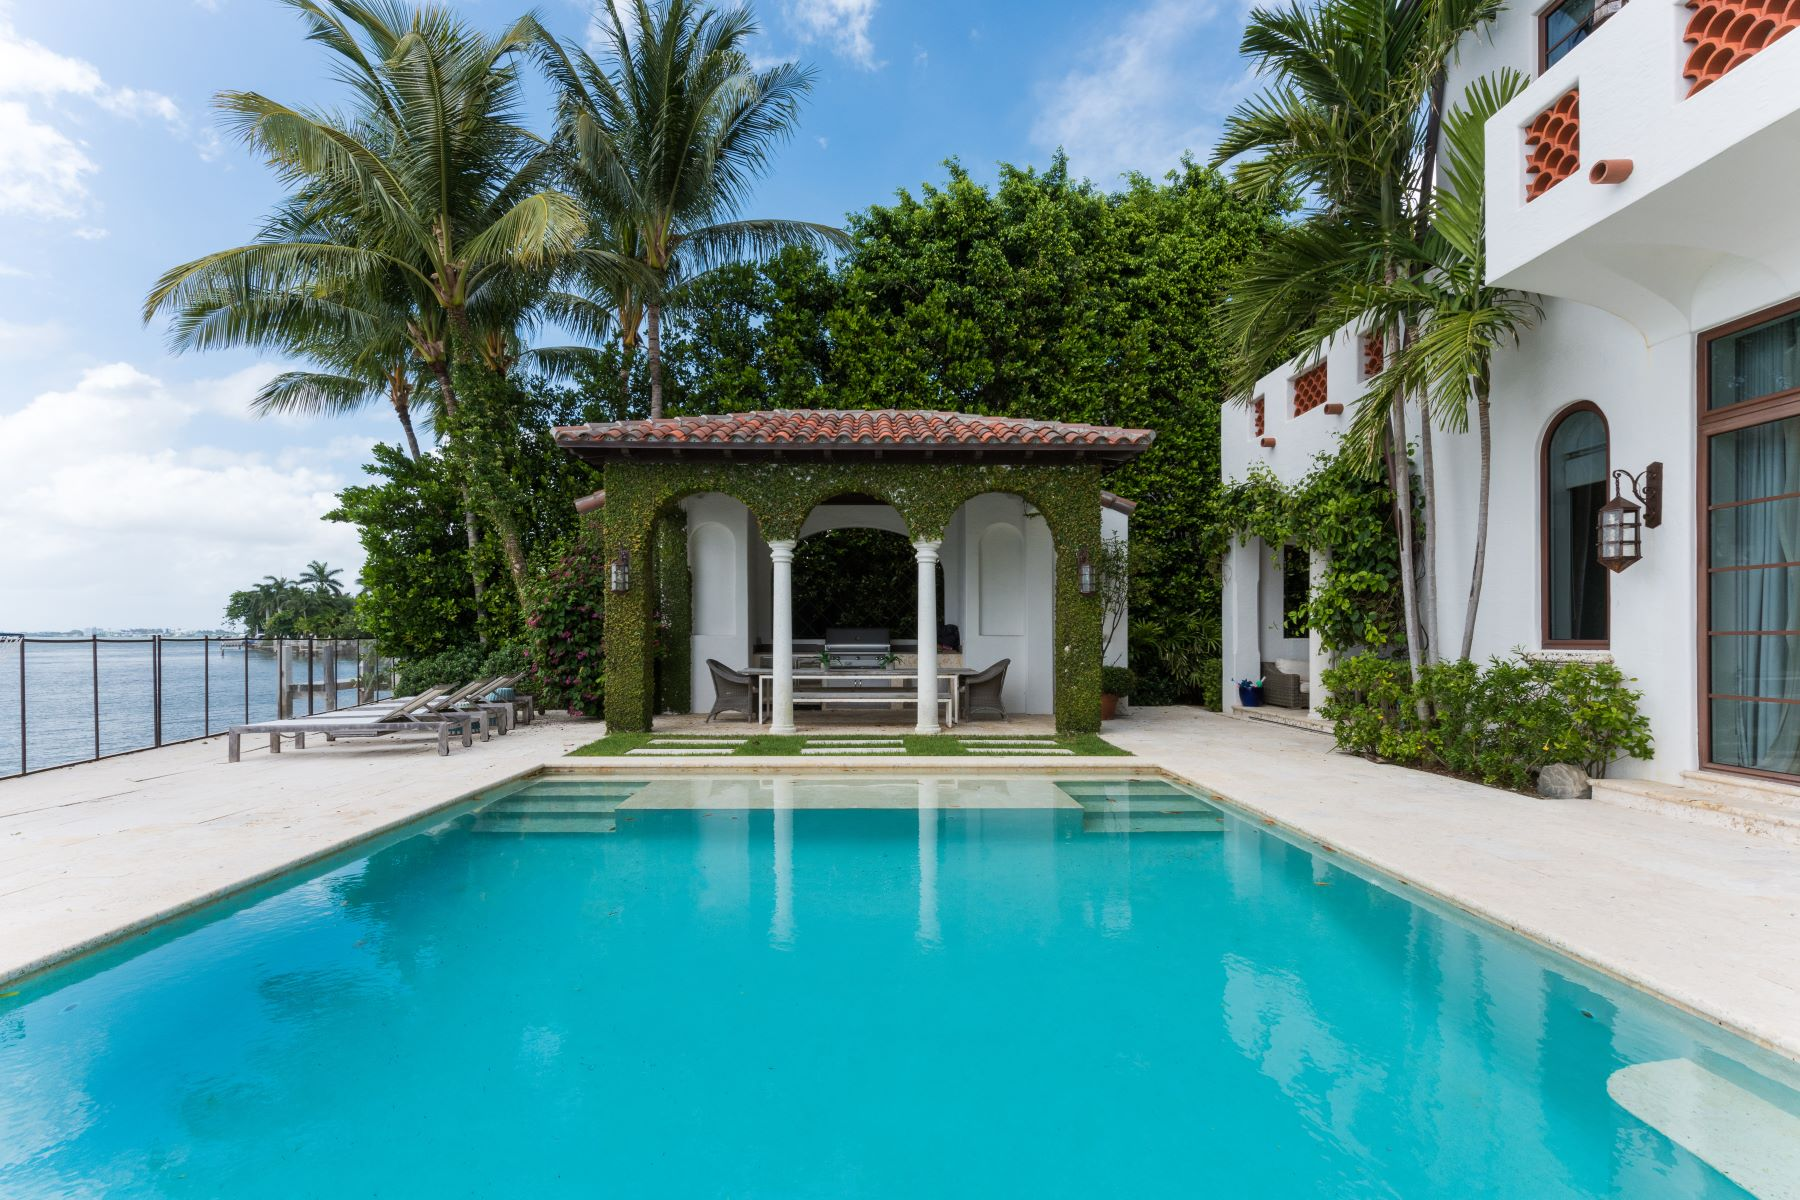 Additional photo for property listing at 4412 N Bay Rd 4412 N Bay Rd Miami Beach, Florida 33140 United States